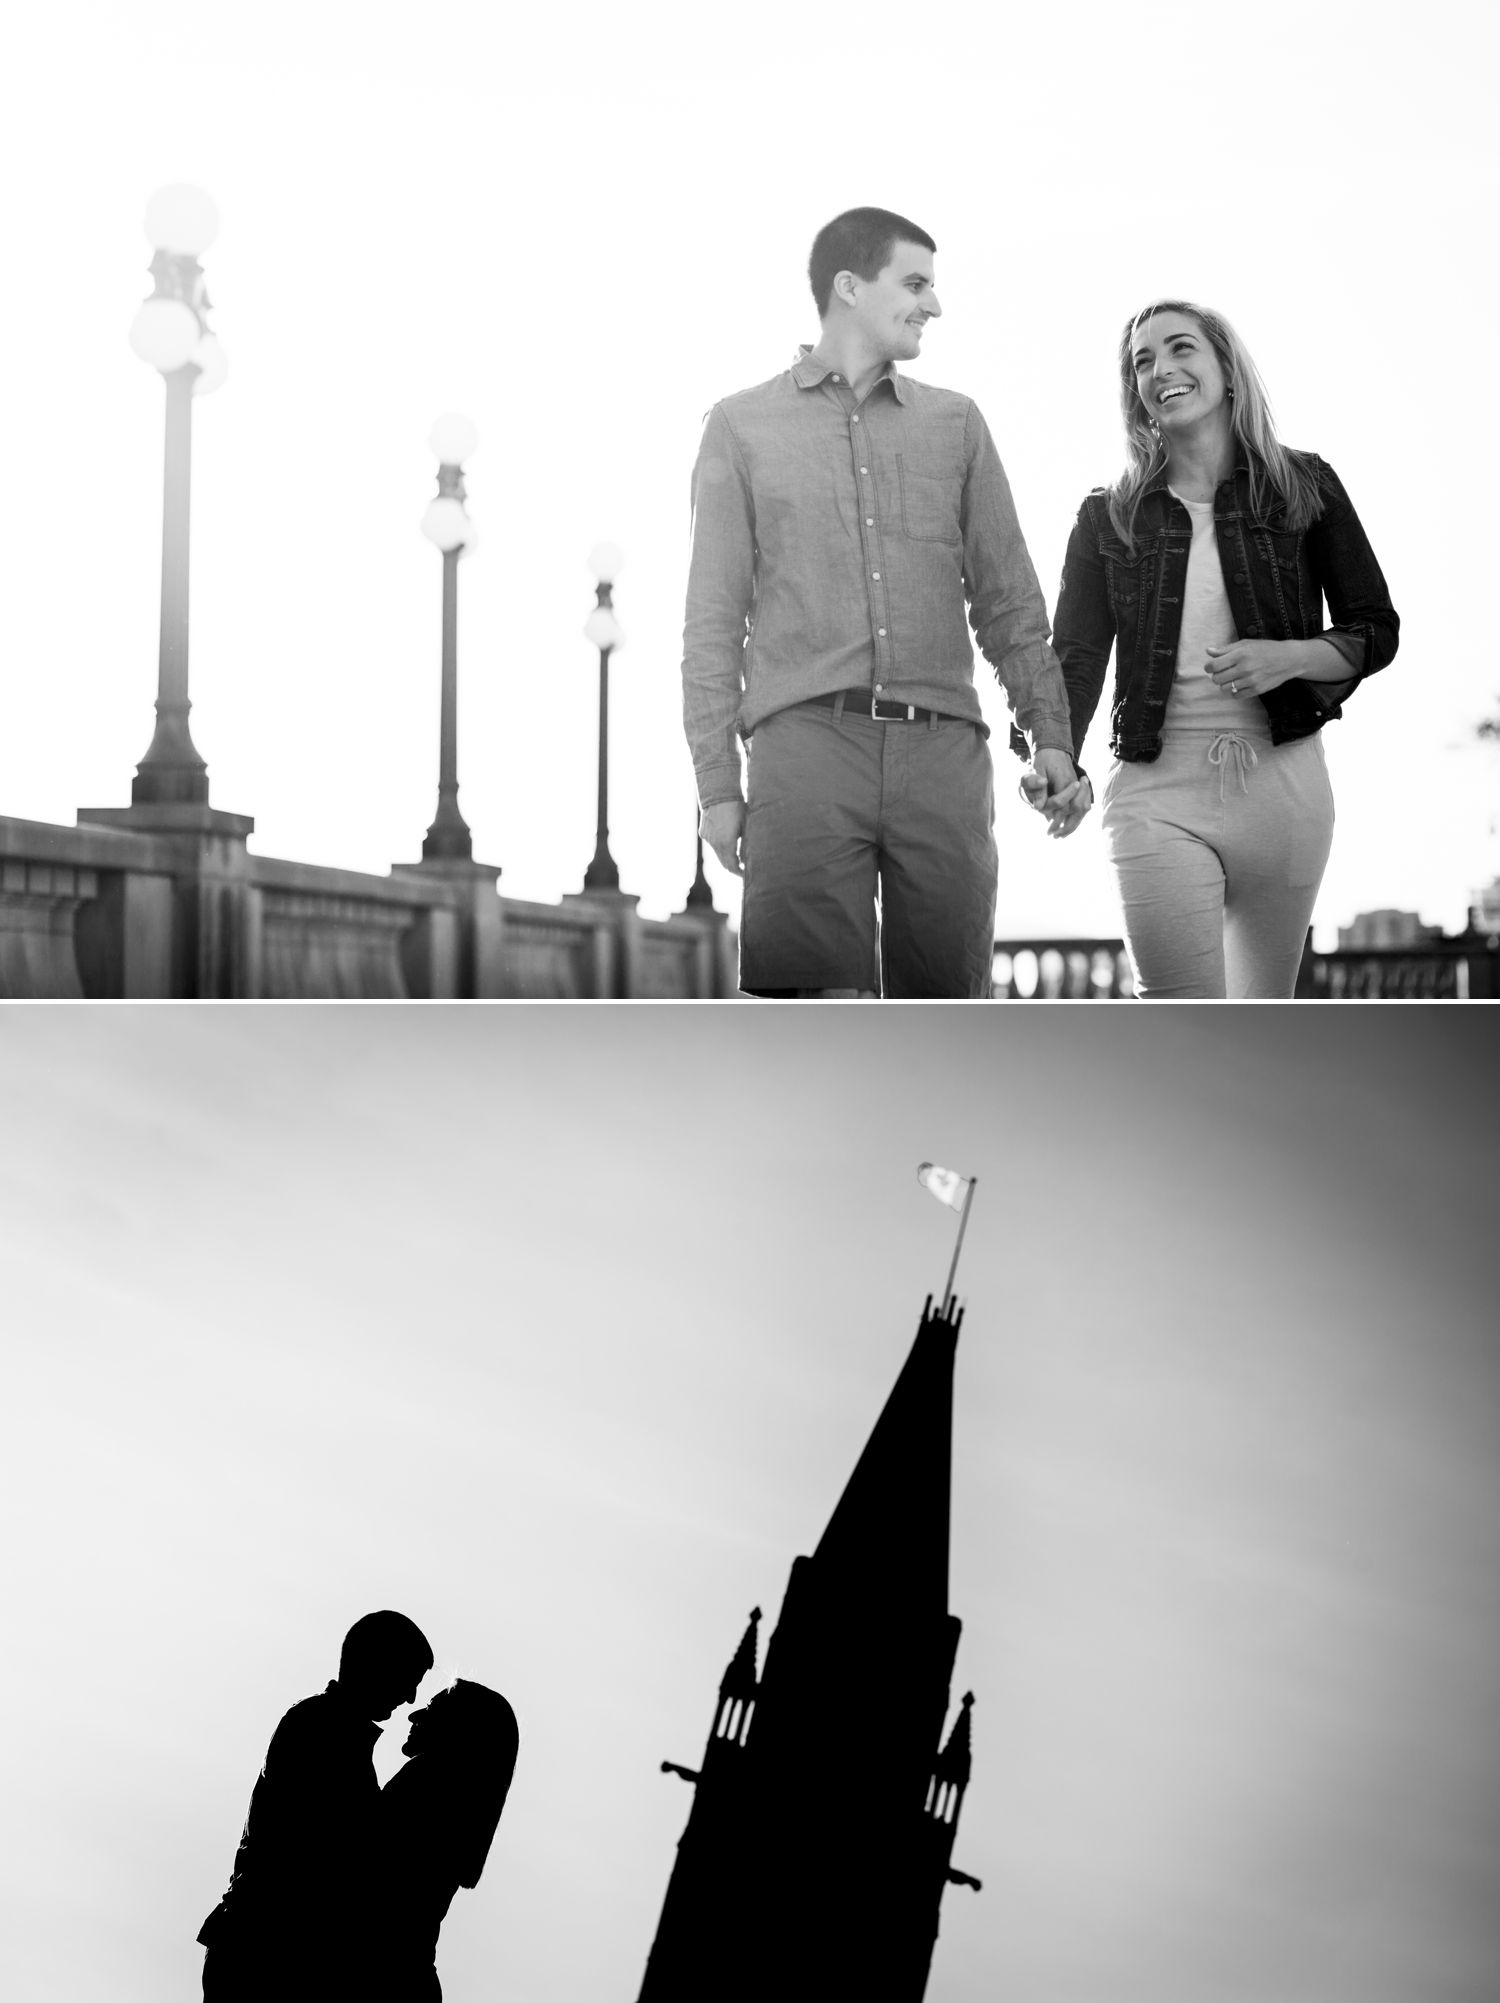 Photos from an engagement shoot at the Ottawa Parliament Buildings